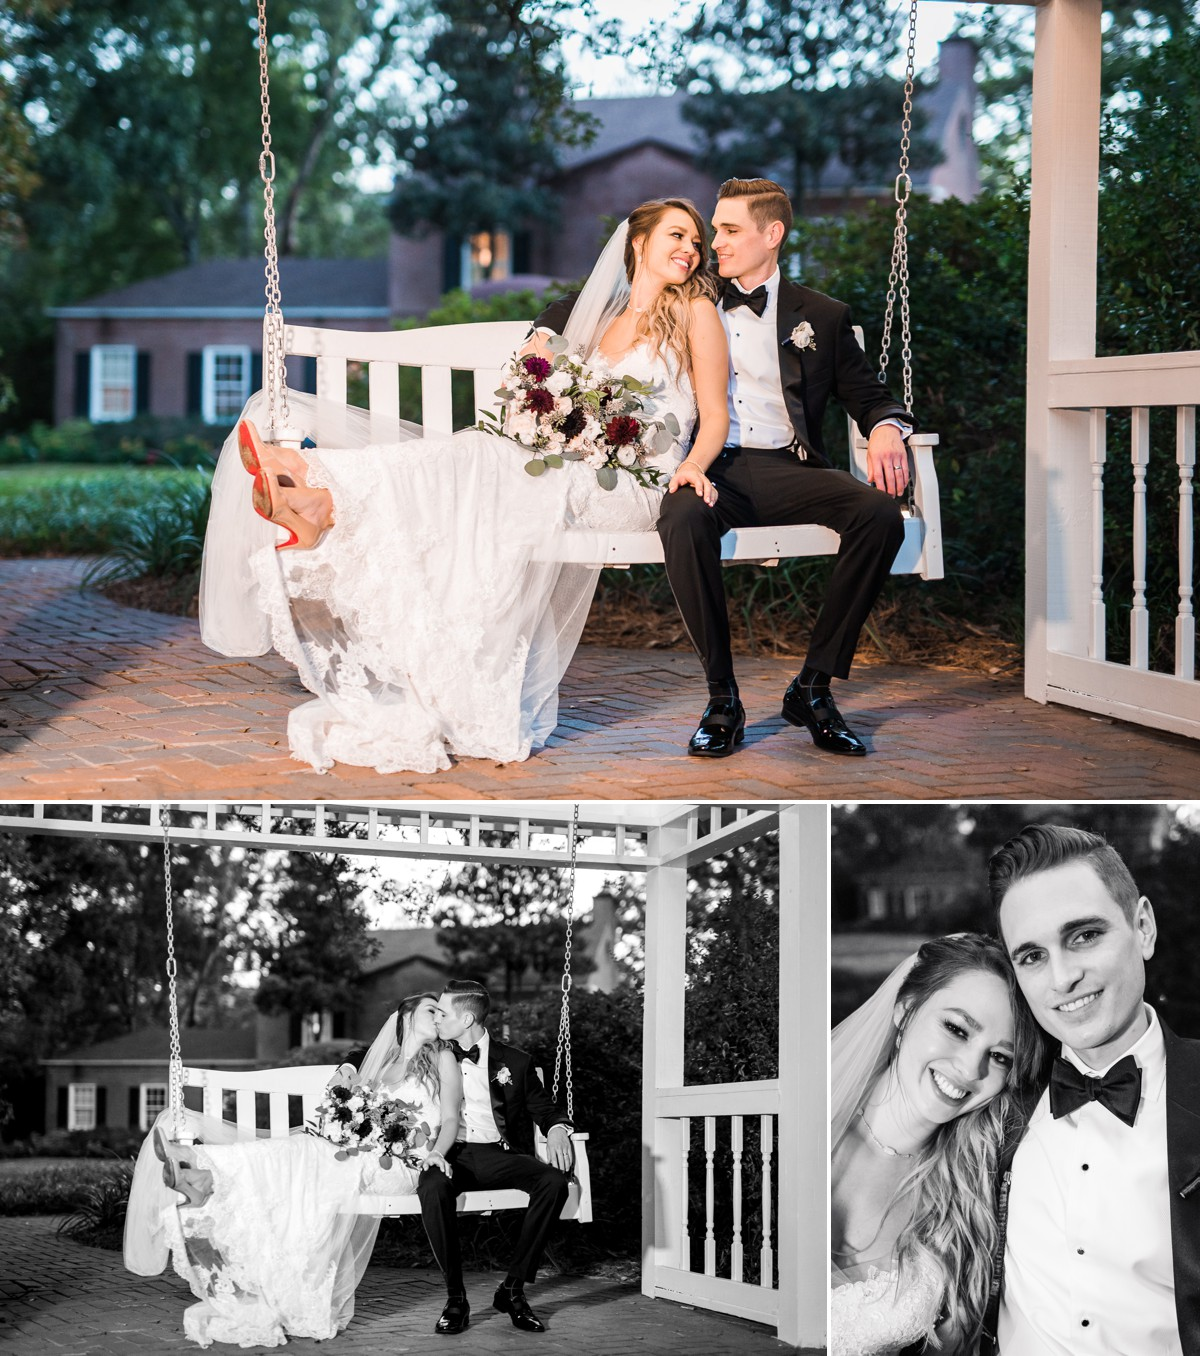 Manor House Wedding at The Houstonian Hotel Bride and Groom outdoor swing reception